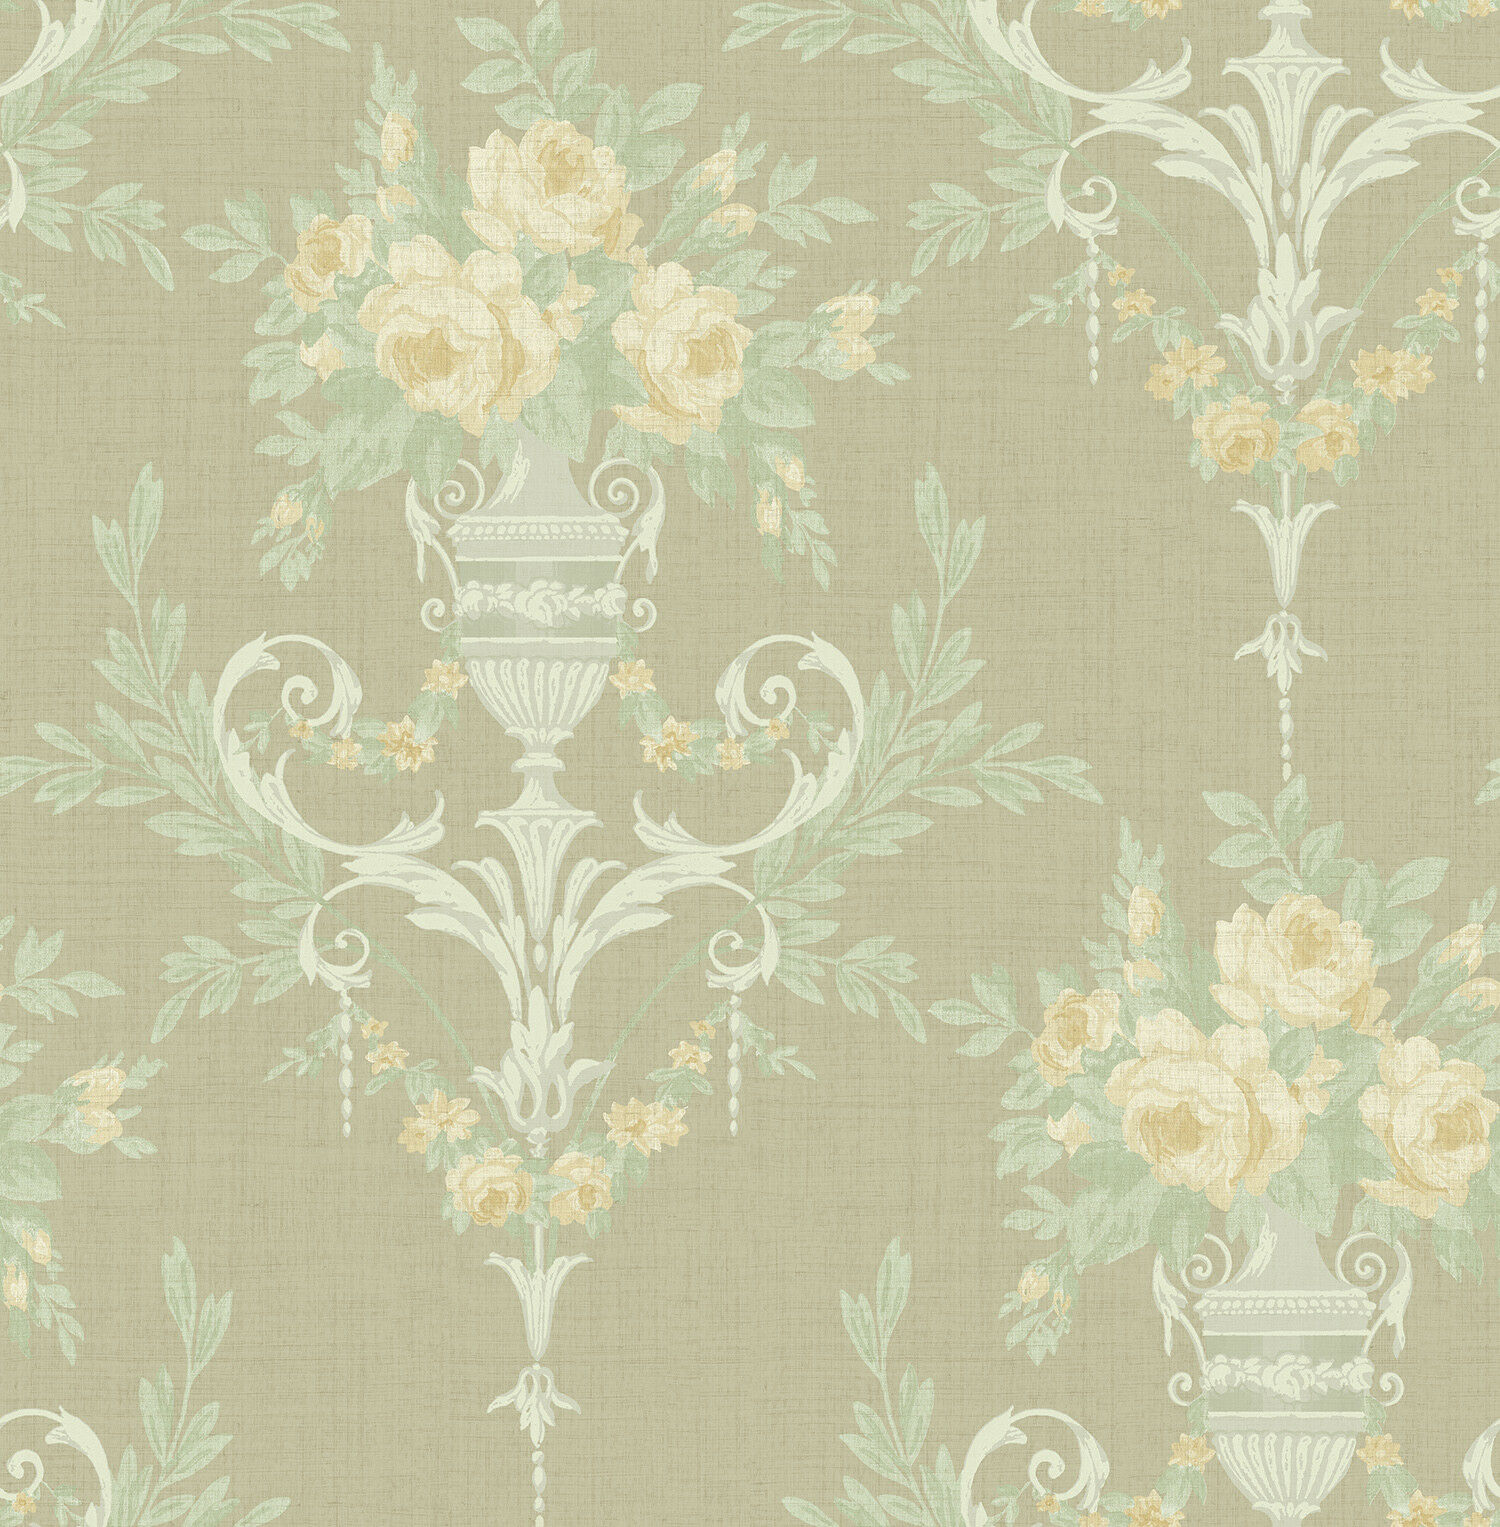 Victorian Floral Damask Wallpaper Silver Pink Green Arts Crafts